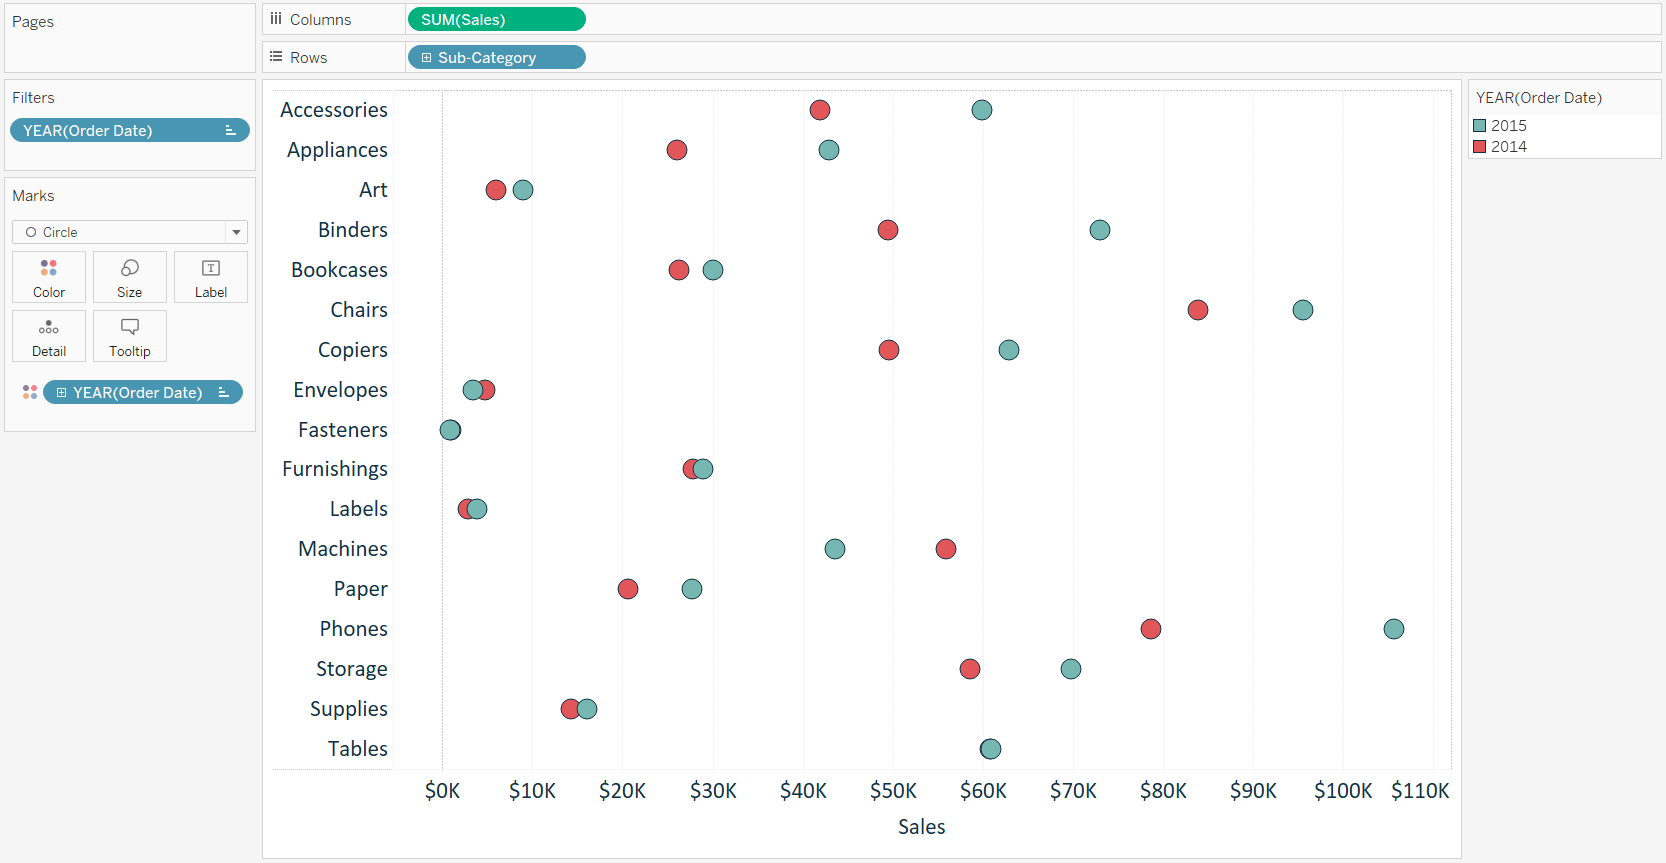 How To Make Dumbbell Charts In Tableau